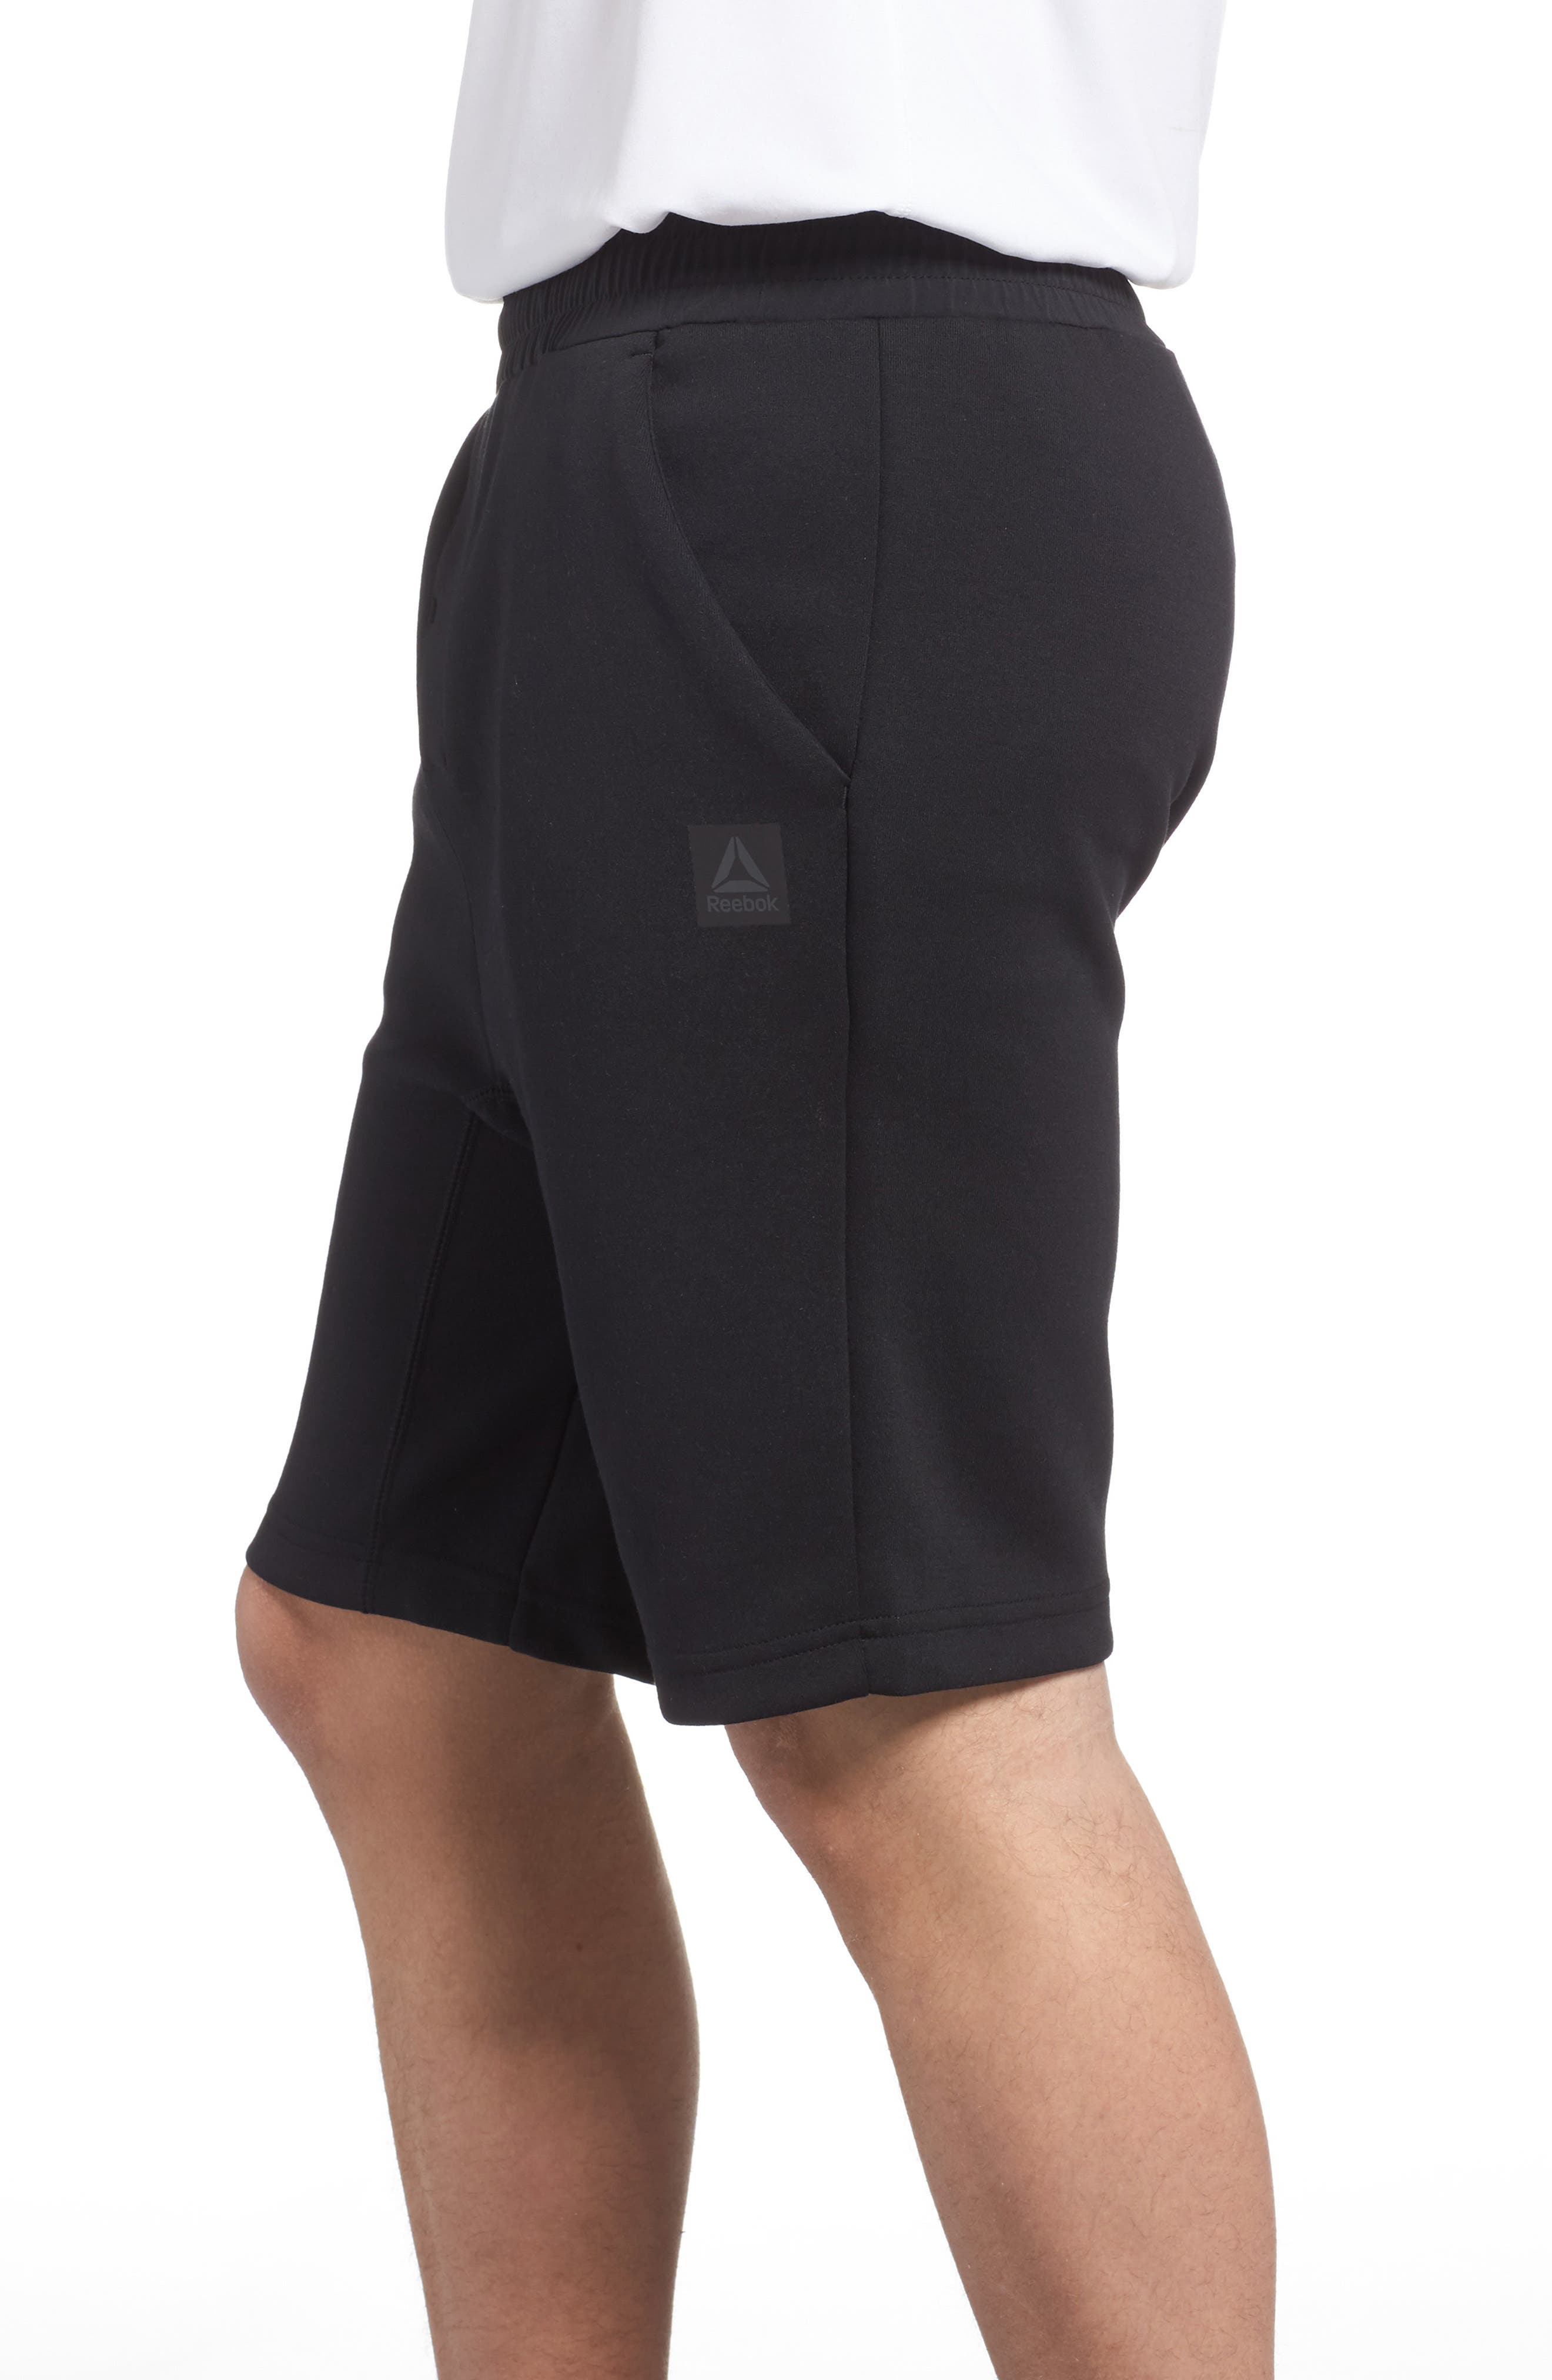 TS Knit Shorts,                             Alternate thumbnail 3, color,                             Black